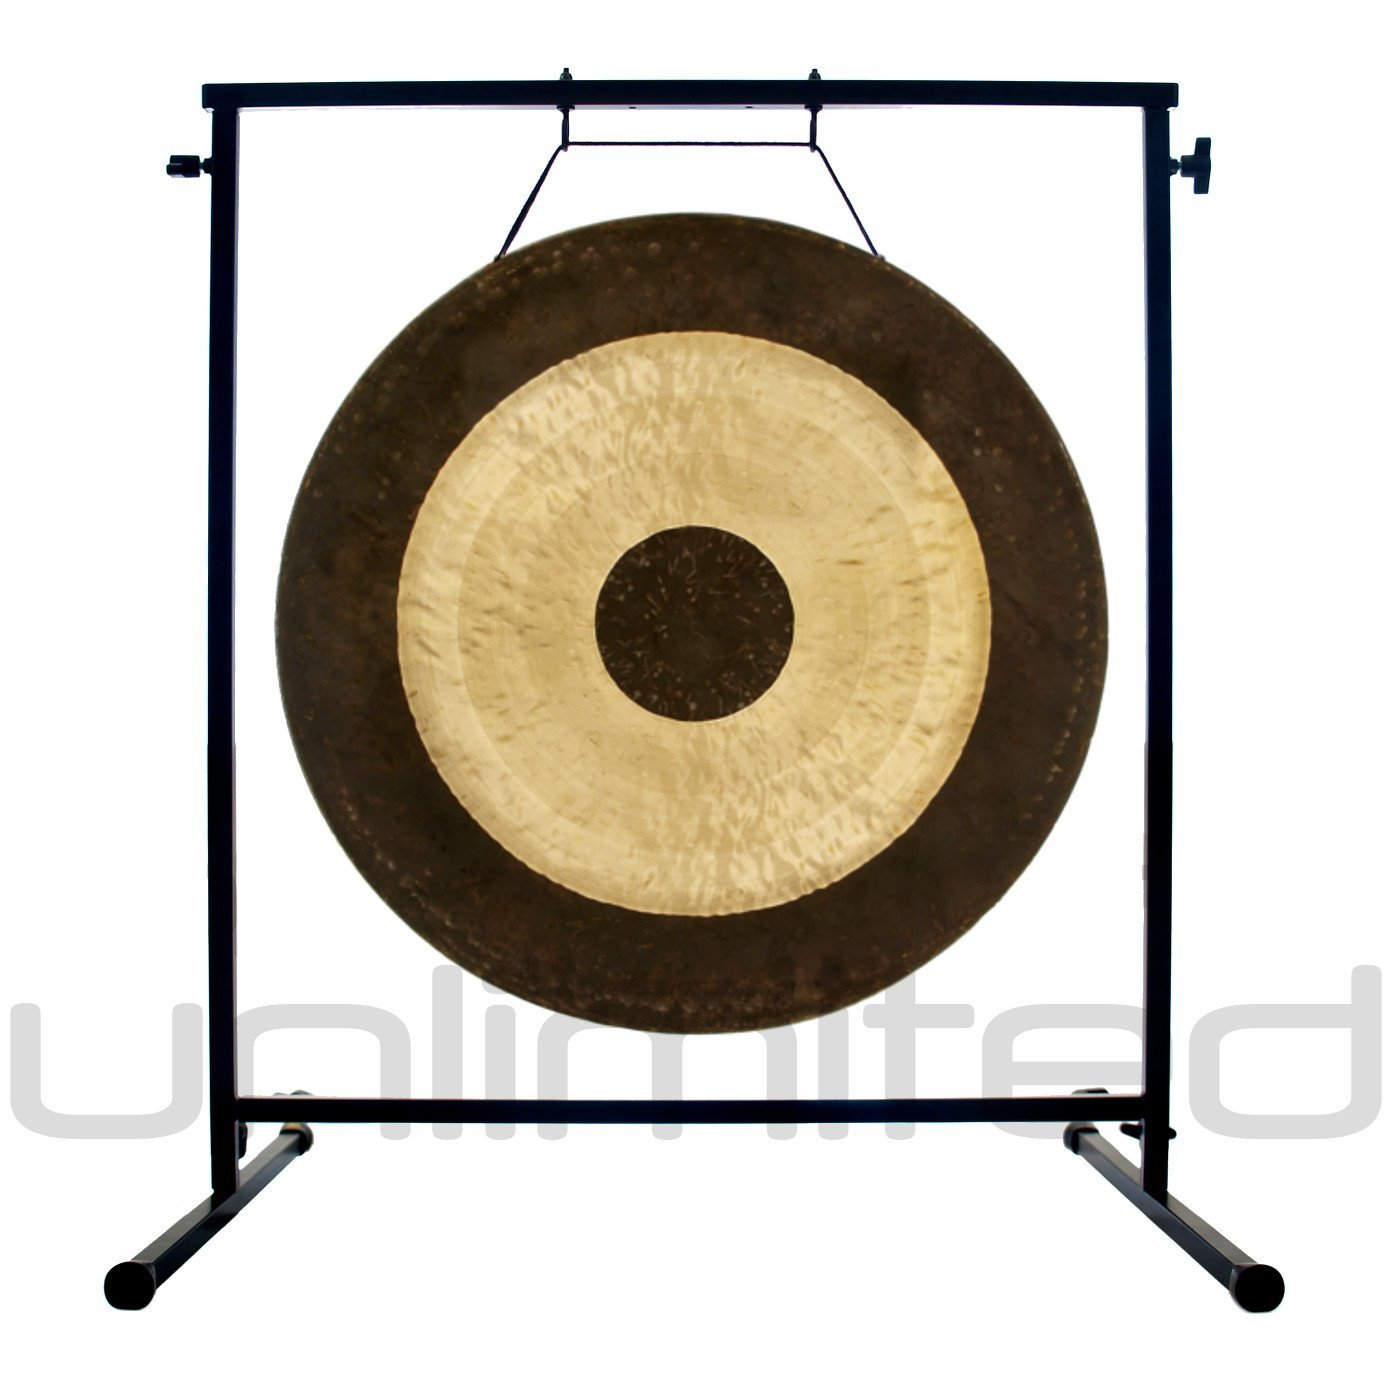 20'' to 26'' Gongs on the Fruity Buddha Gong Stand by Unlimited